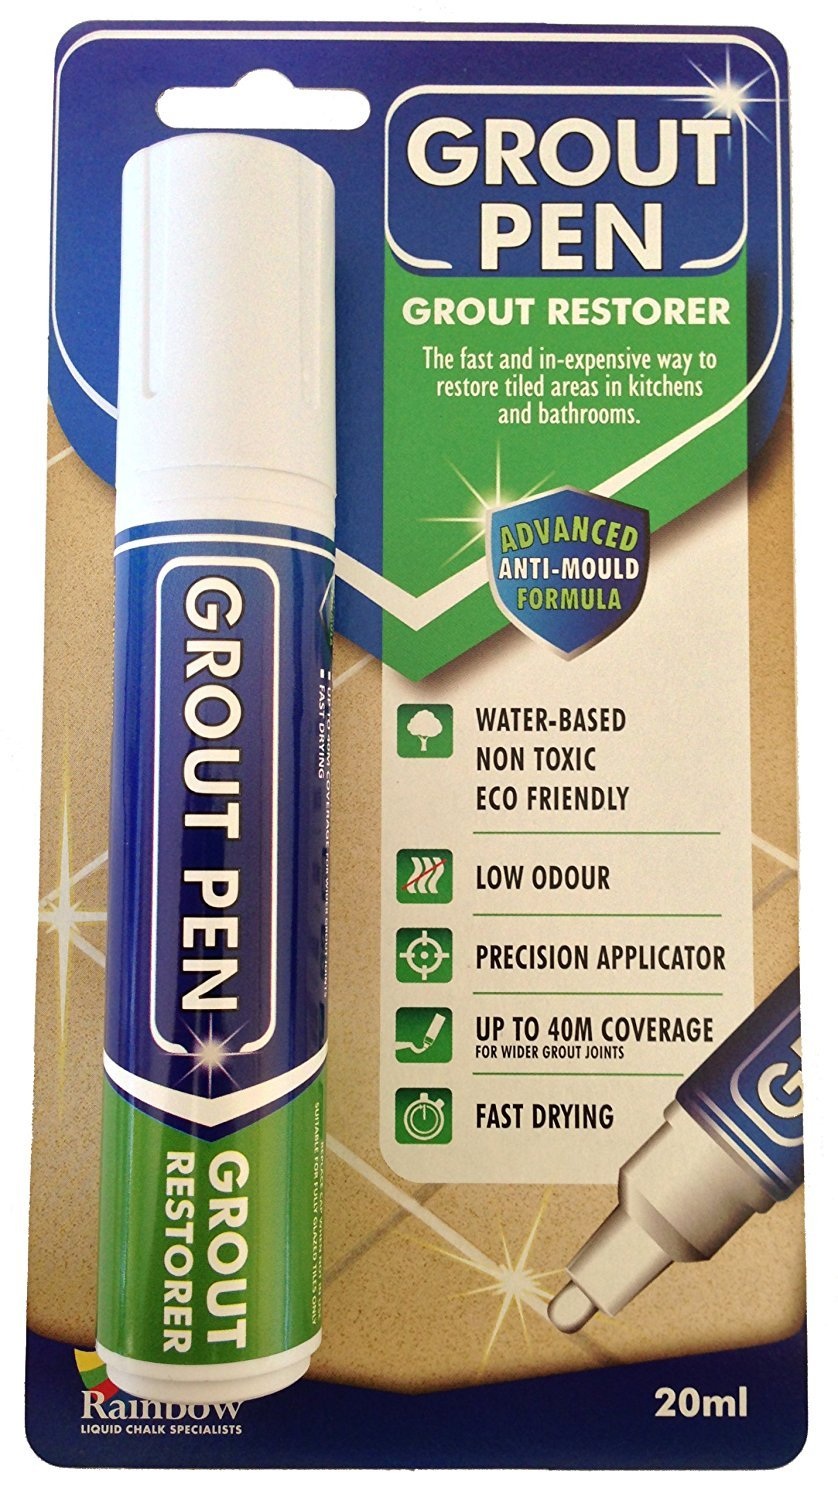 Rainbow Chalk Markers Ltd Grout Pen 1 Each and every large grout pen has a 15mm broad nib The formula used to create each grout pen is both water-based and non-toxic which makes it safe to use everywhere The antibacterial and anti-fungal formula makes it the safest choice